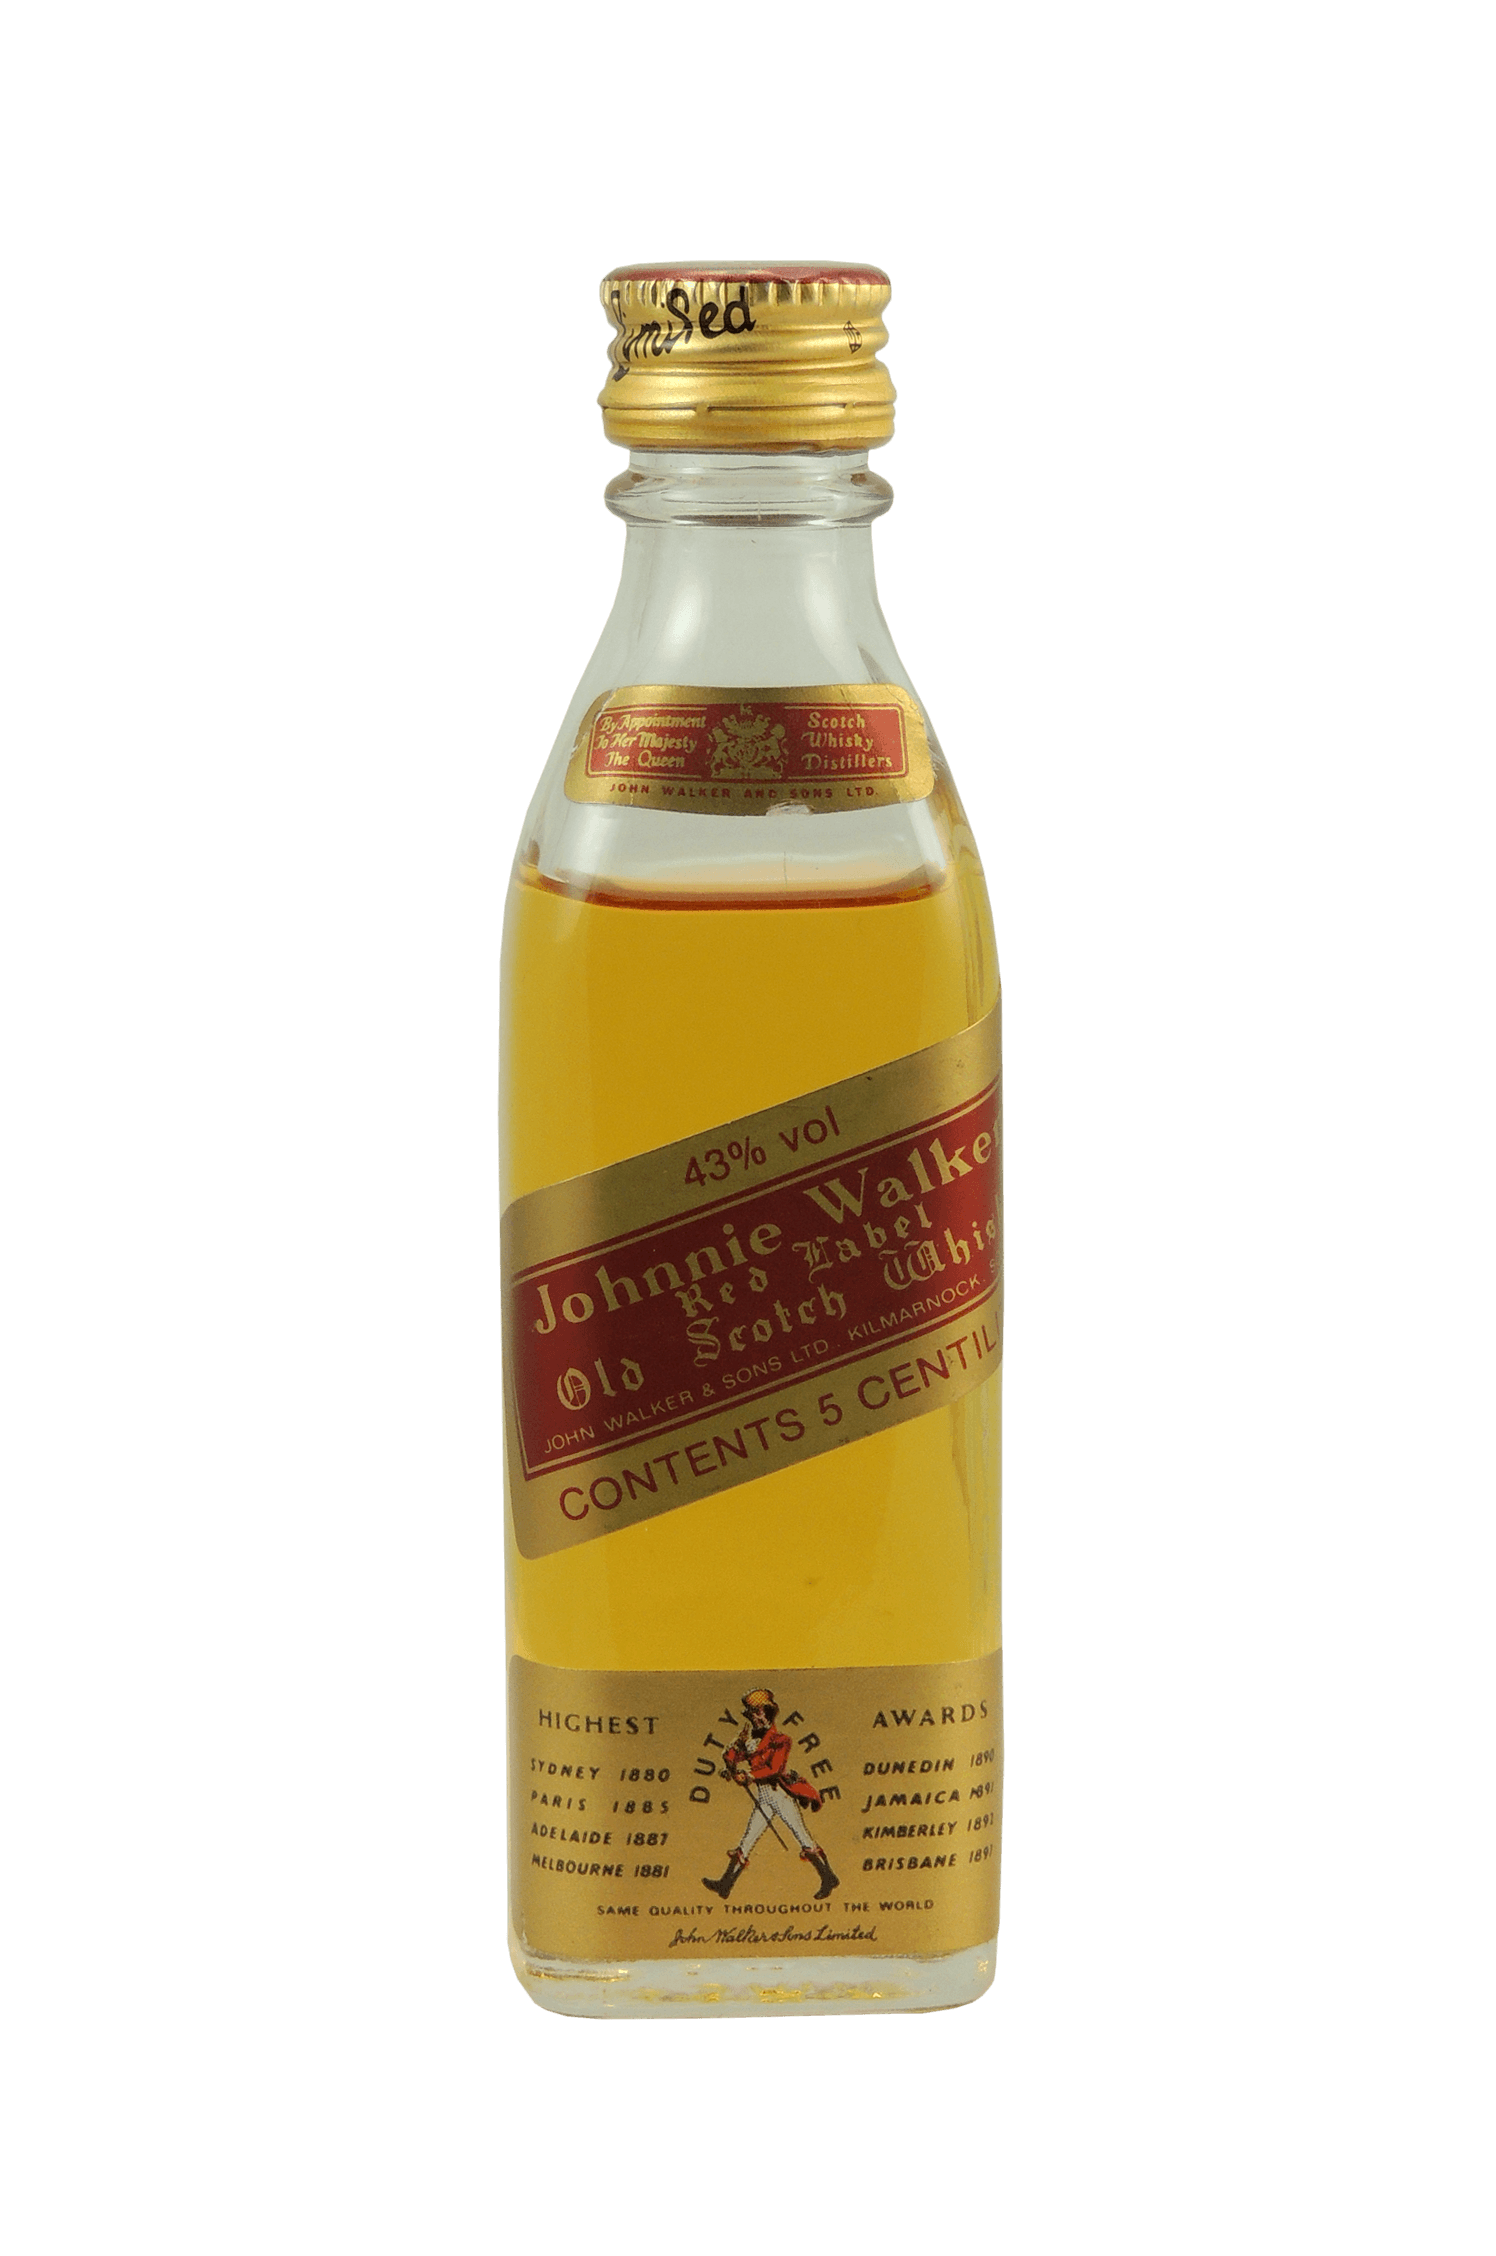 Red Label Old Scotch Whisky